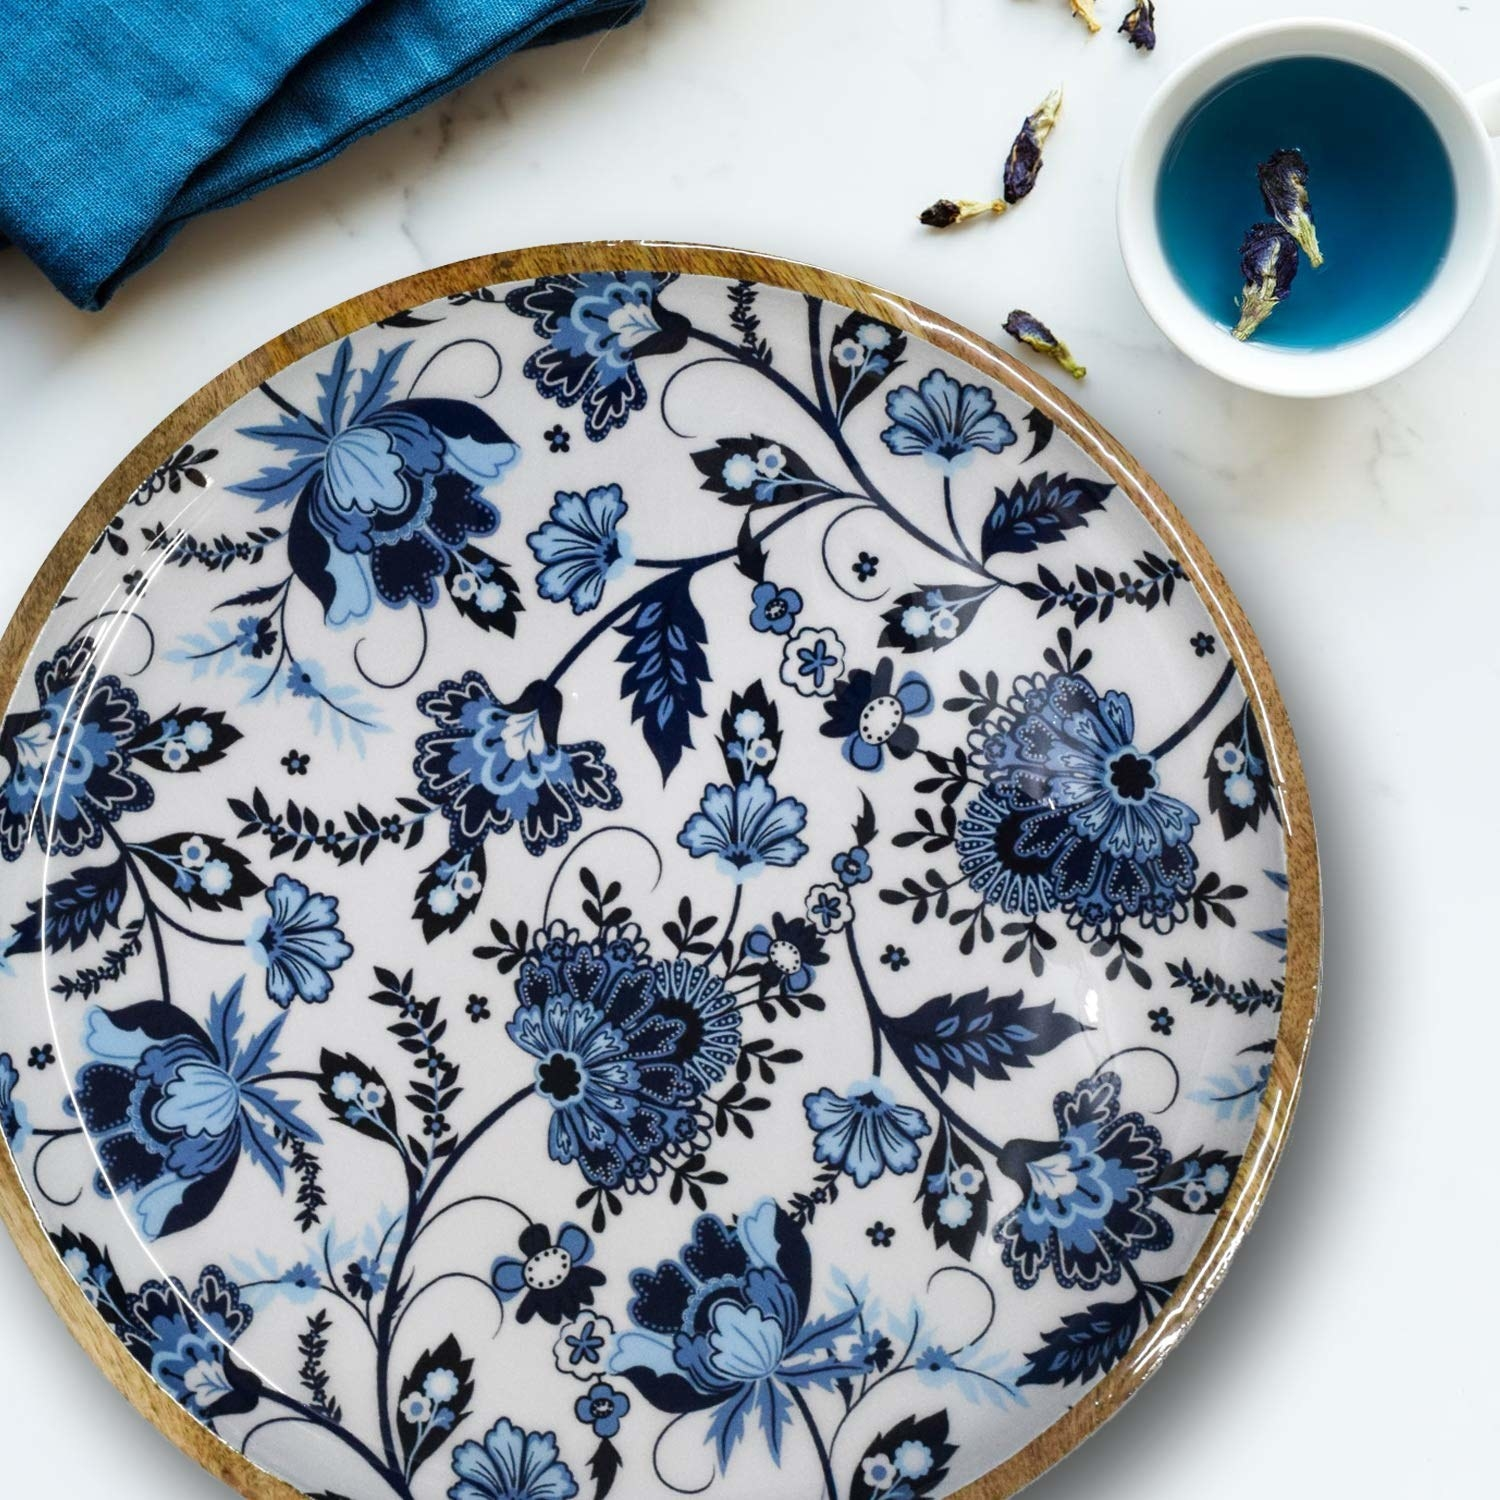 A circular wooden tray with a white and blue floral design.